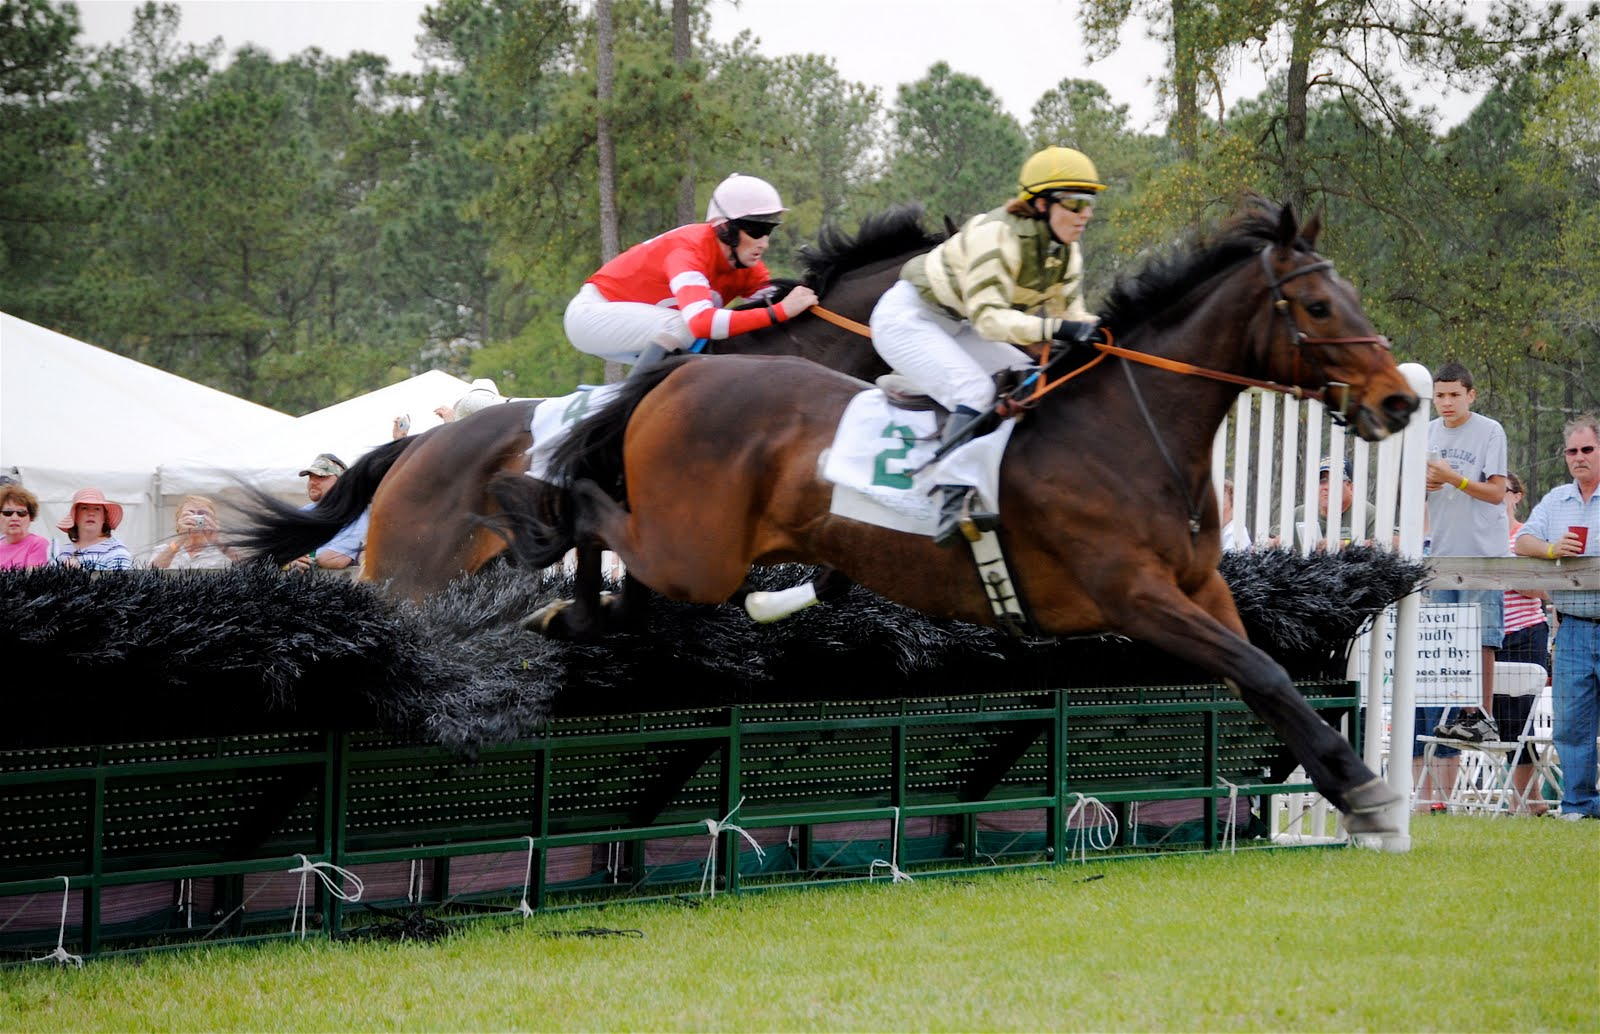 Opinions on steeplechase horse racing for Steeplechase